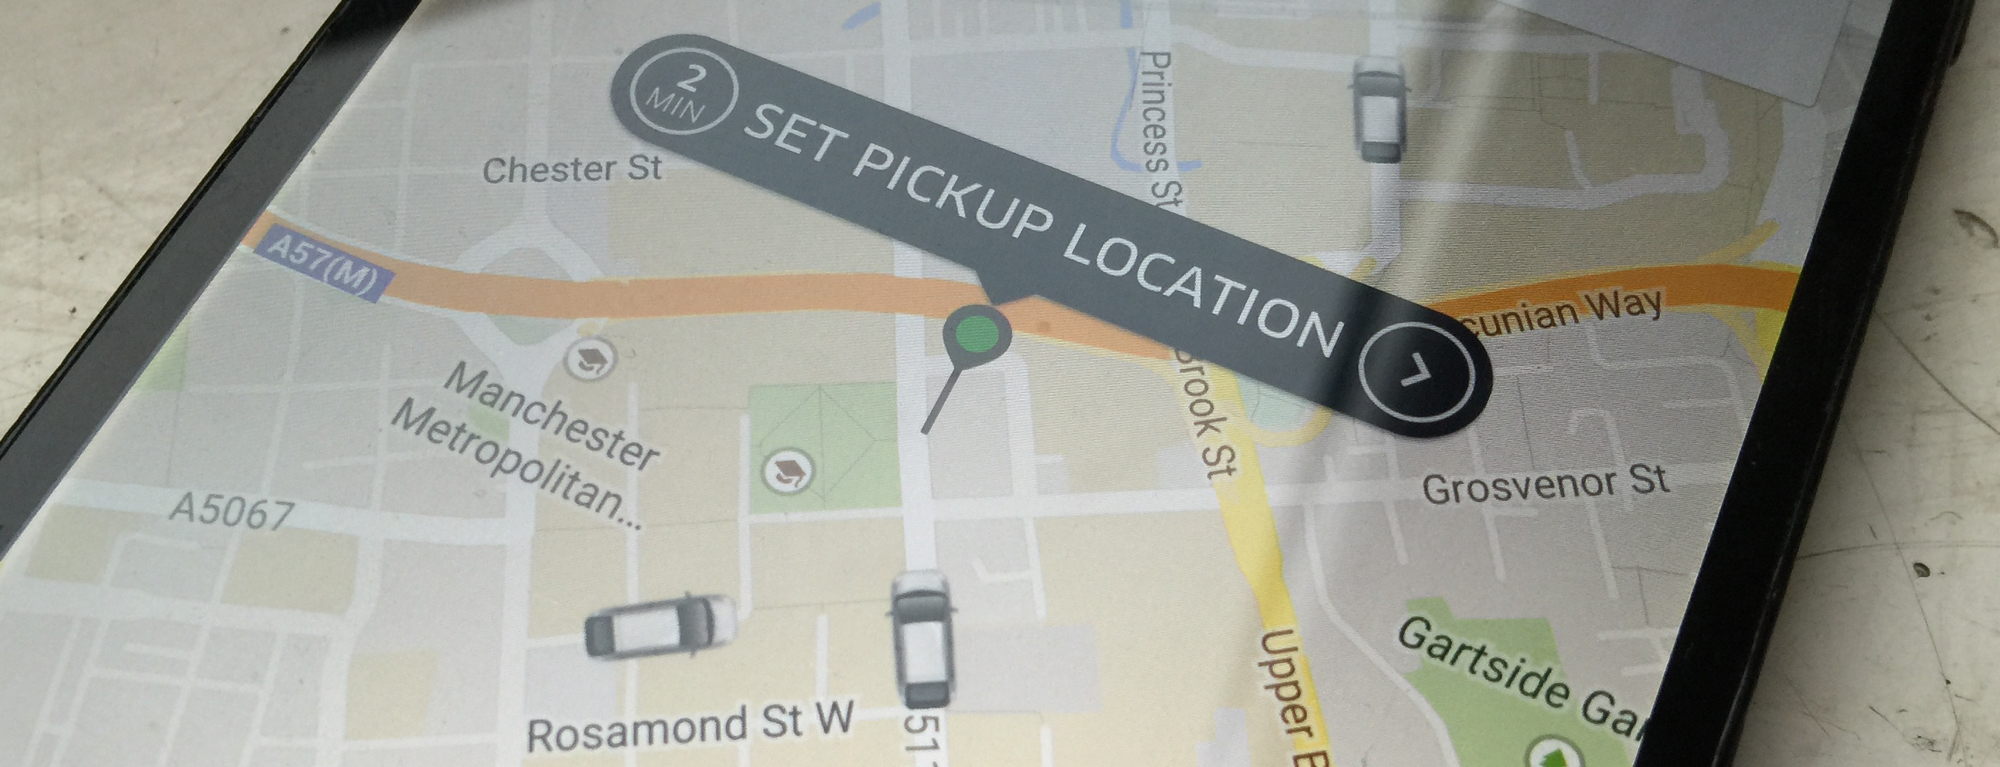 Uber Signs Deal With City Of Boston To Share Ride Data